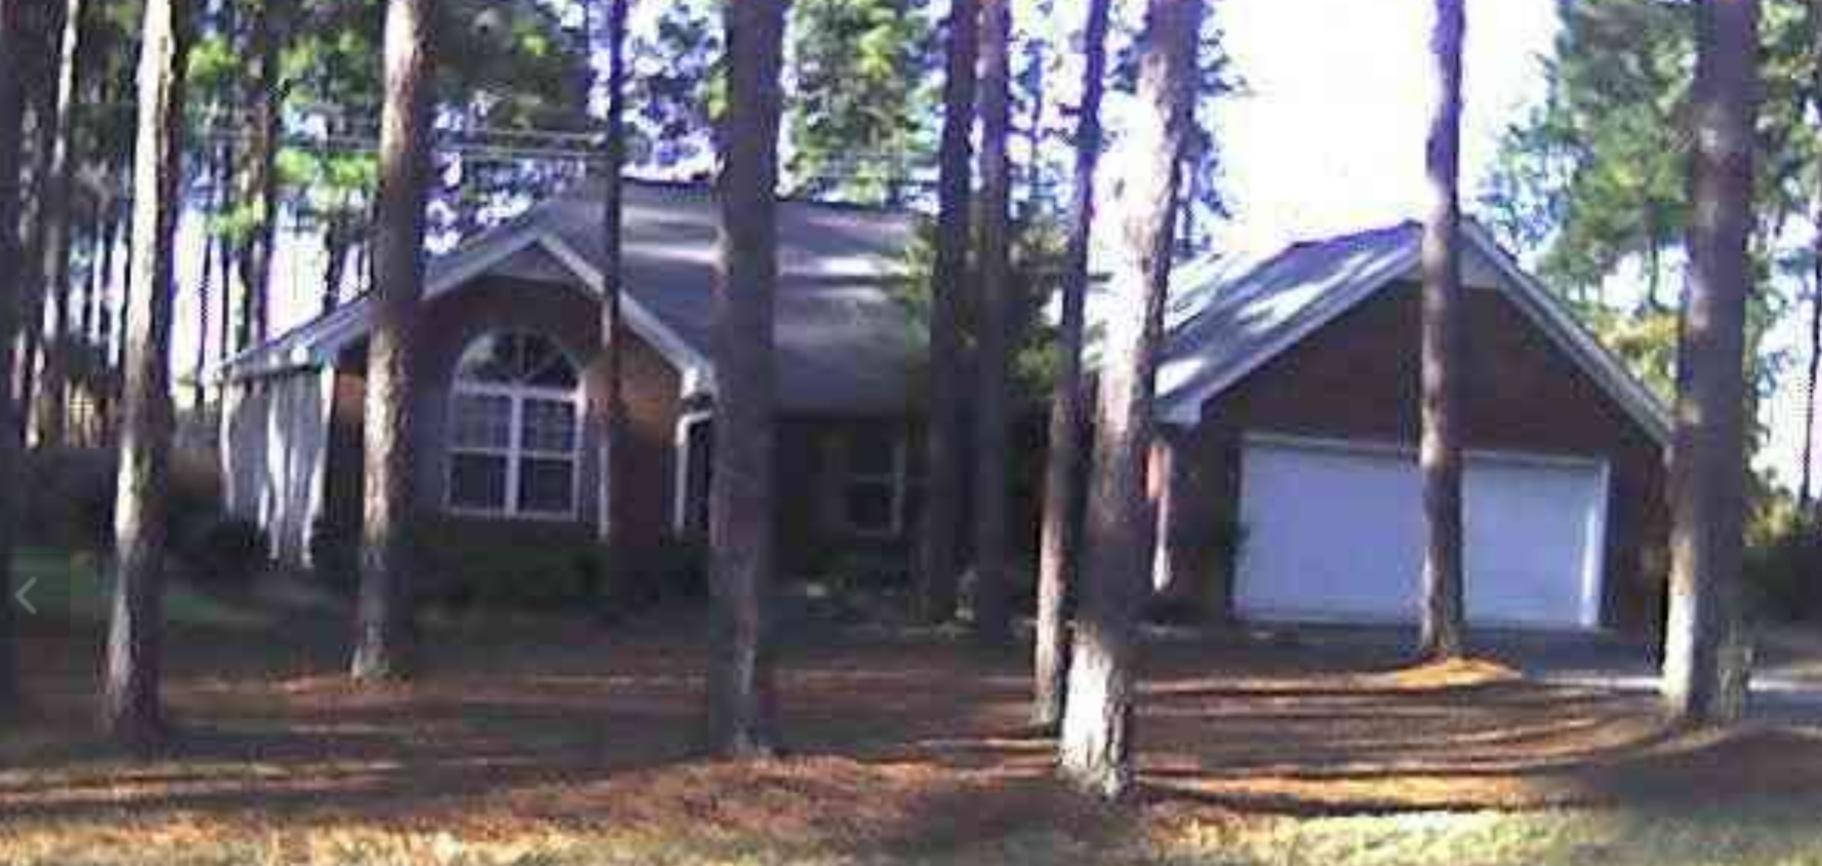 14  Moore Drive, Pinehurst in Moore County, NC 28374 Home for Sale